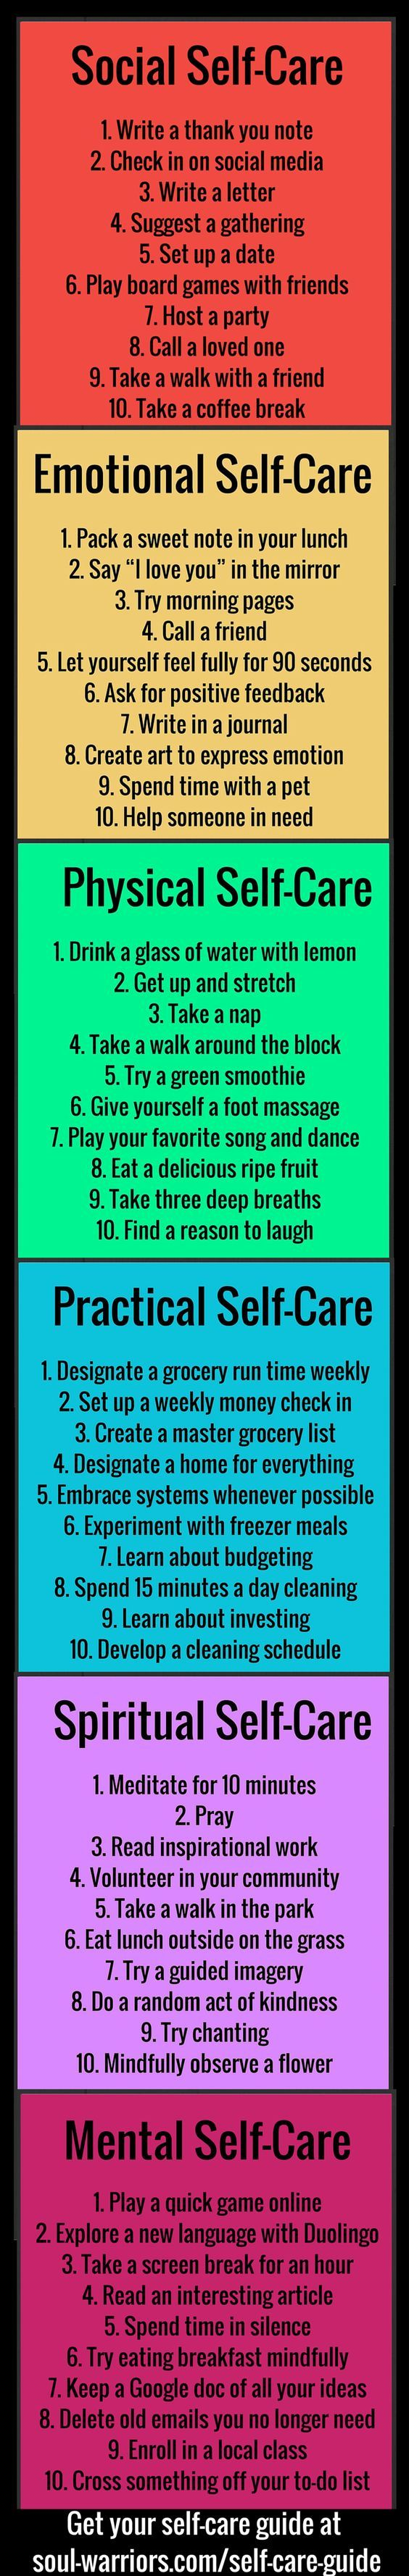 Self care tips for all aspects of your life. Write your own. Set goals. Use them for moving forward, changing and for coping skills when under pressure.